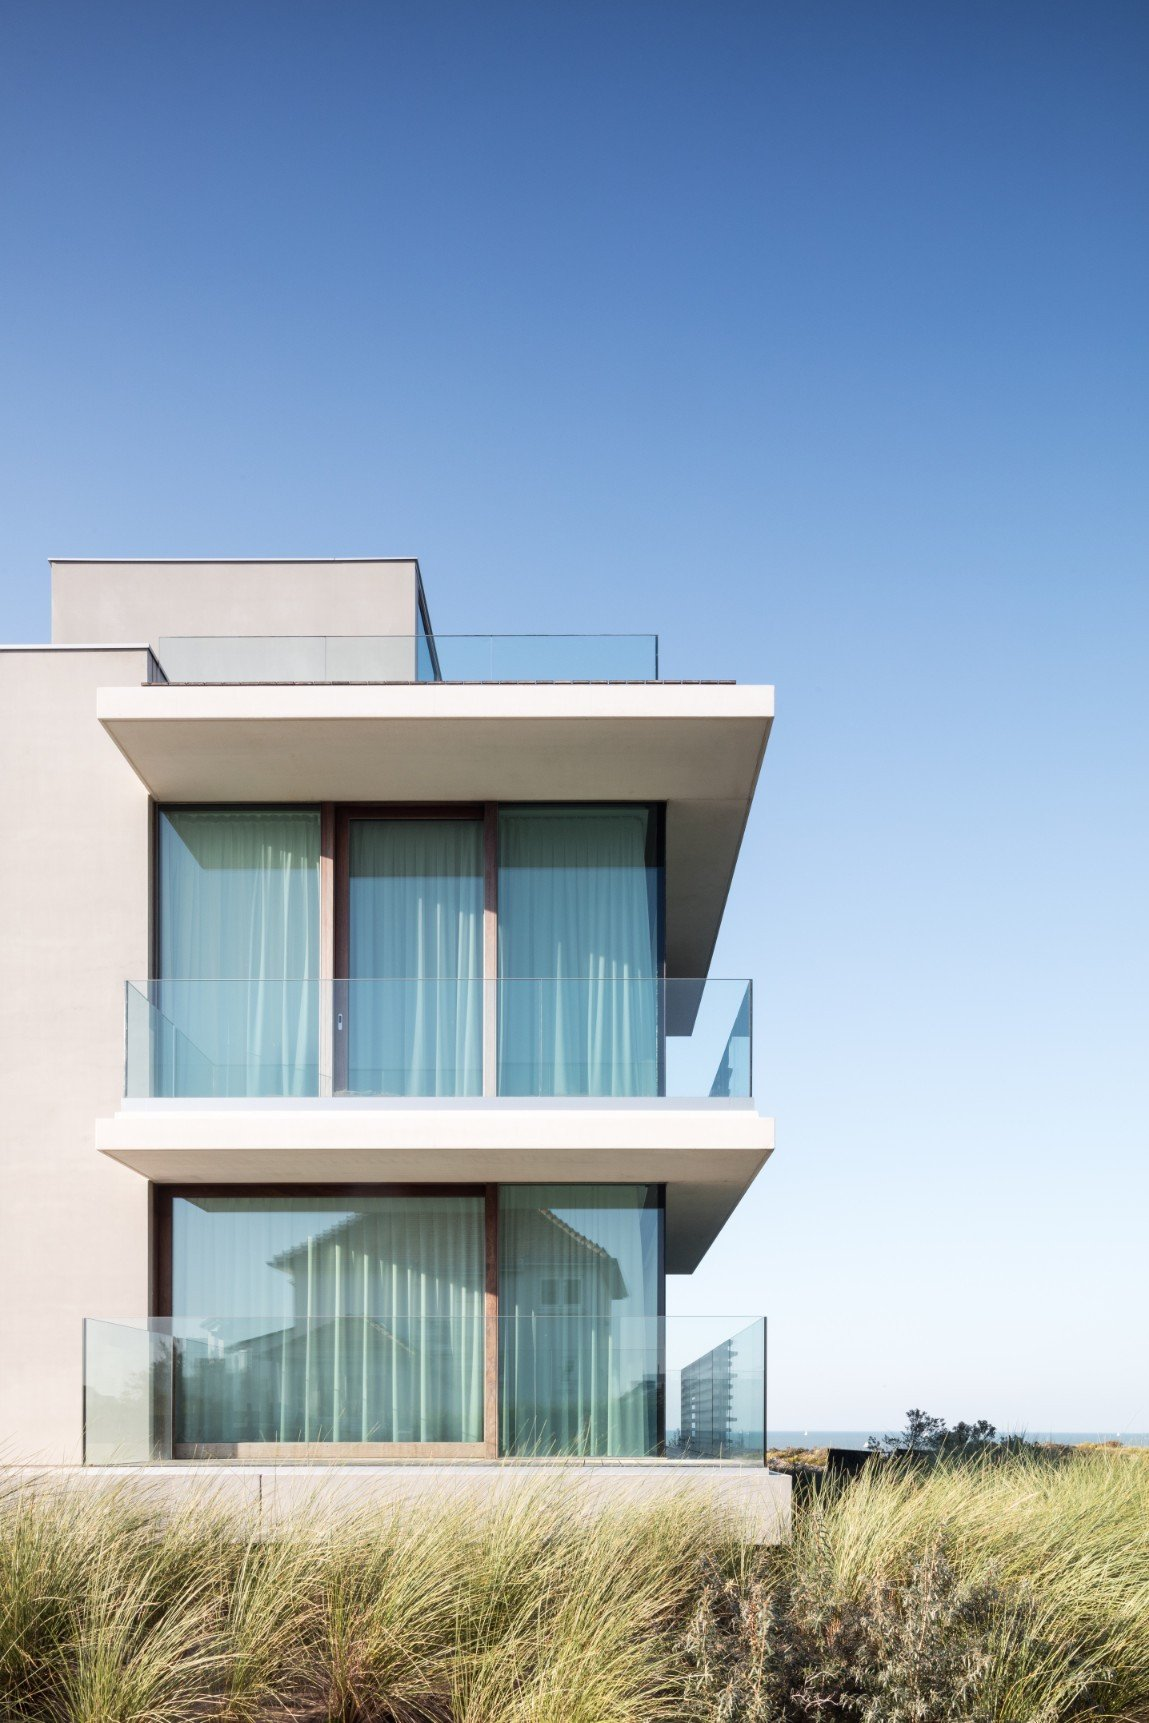 Rietveldprojects-Residence-ON-appartement-design-architectuur-kust-tvdv3